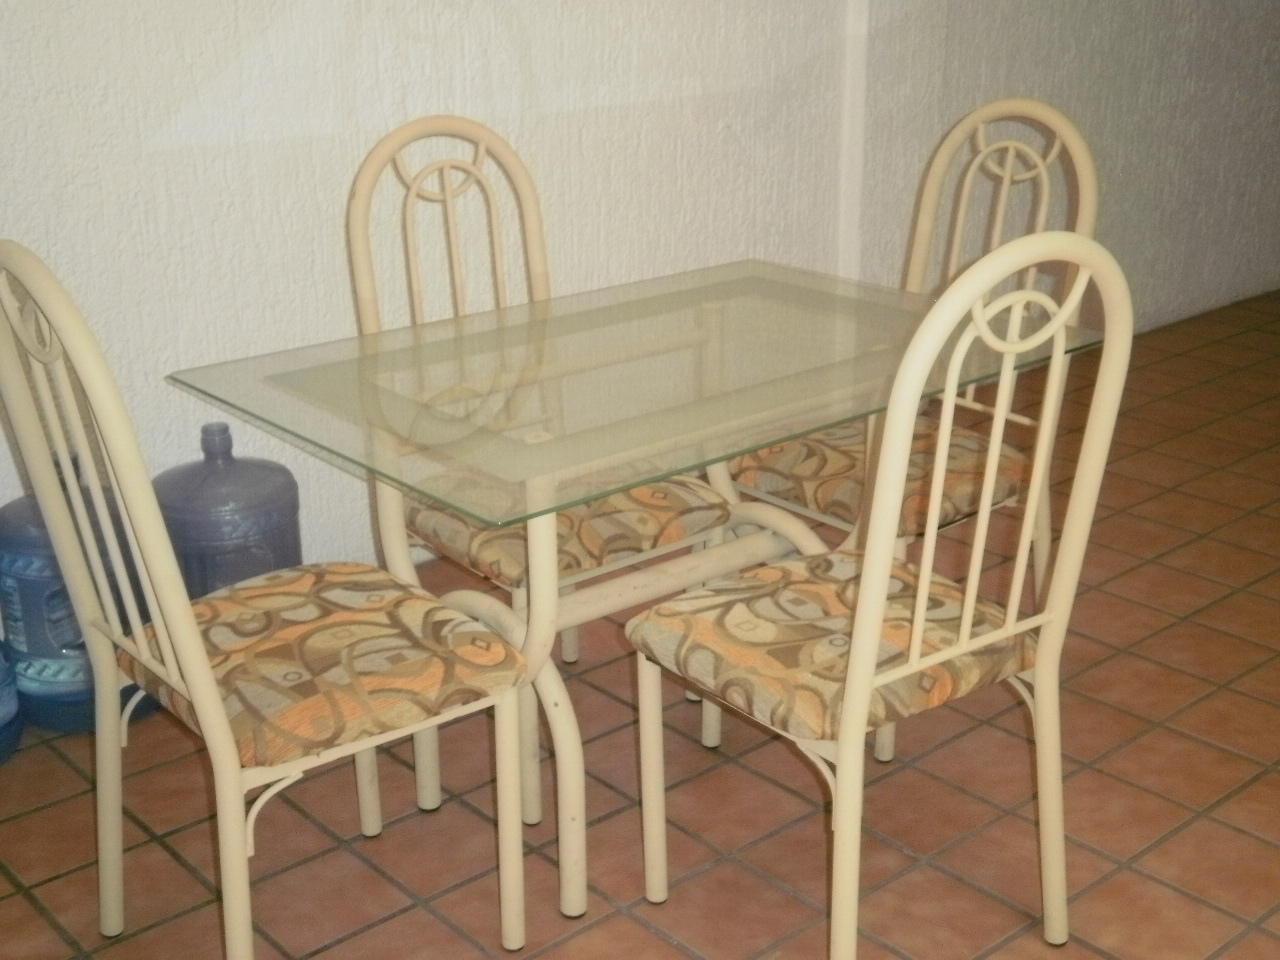 Dining table dining table and chairs for sale for Dining room table and chairs for sale